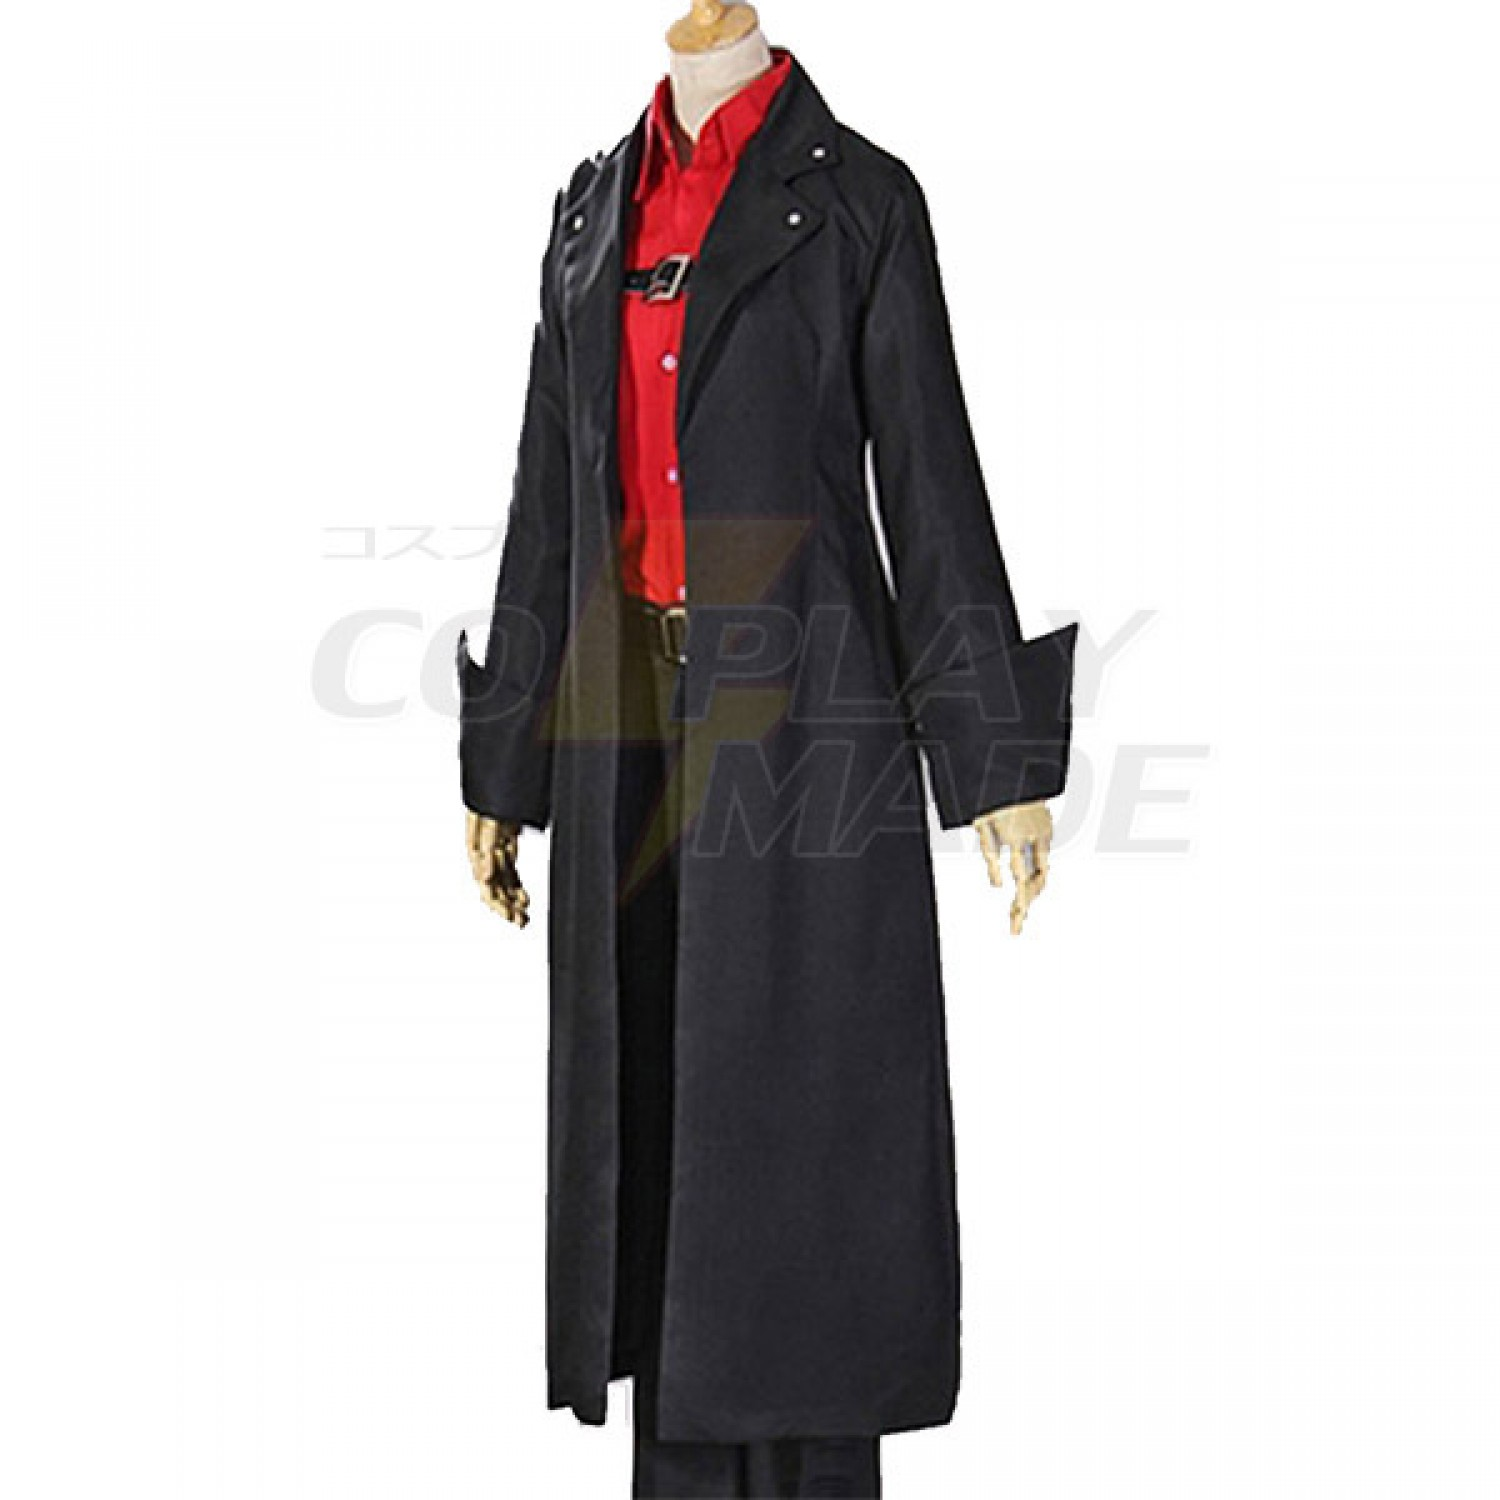 Attack on Titan Humanity in Chains Levi Mikasa Eren Jaeger Cosplay Costume